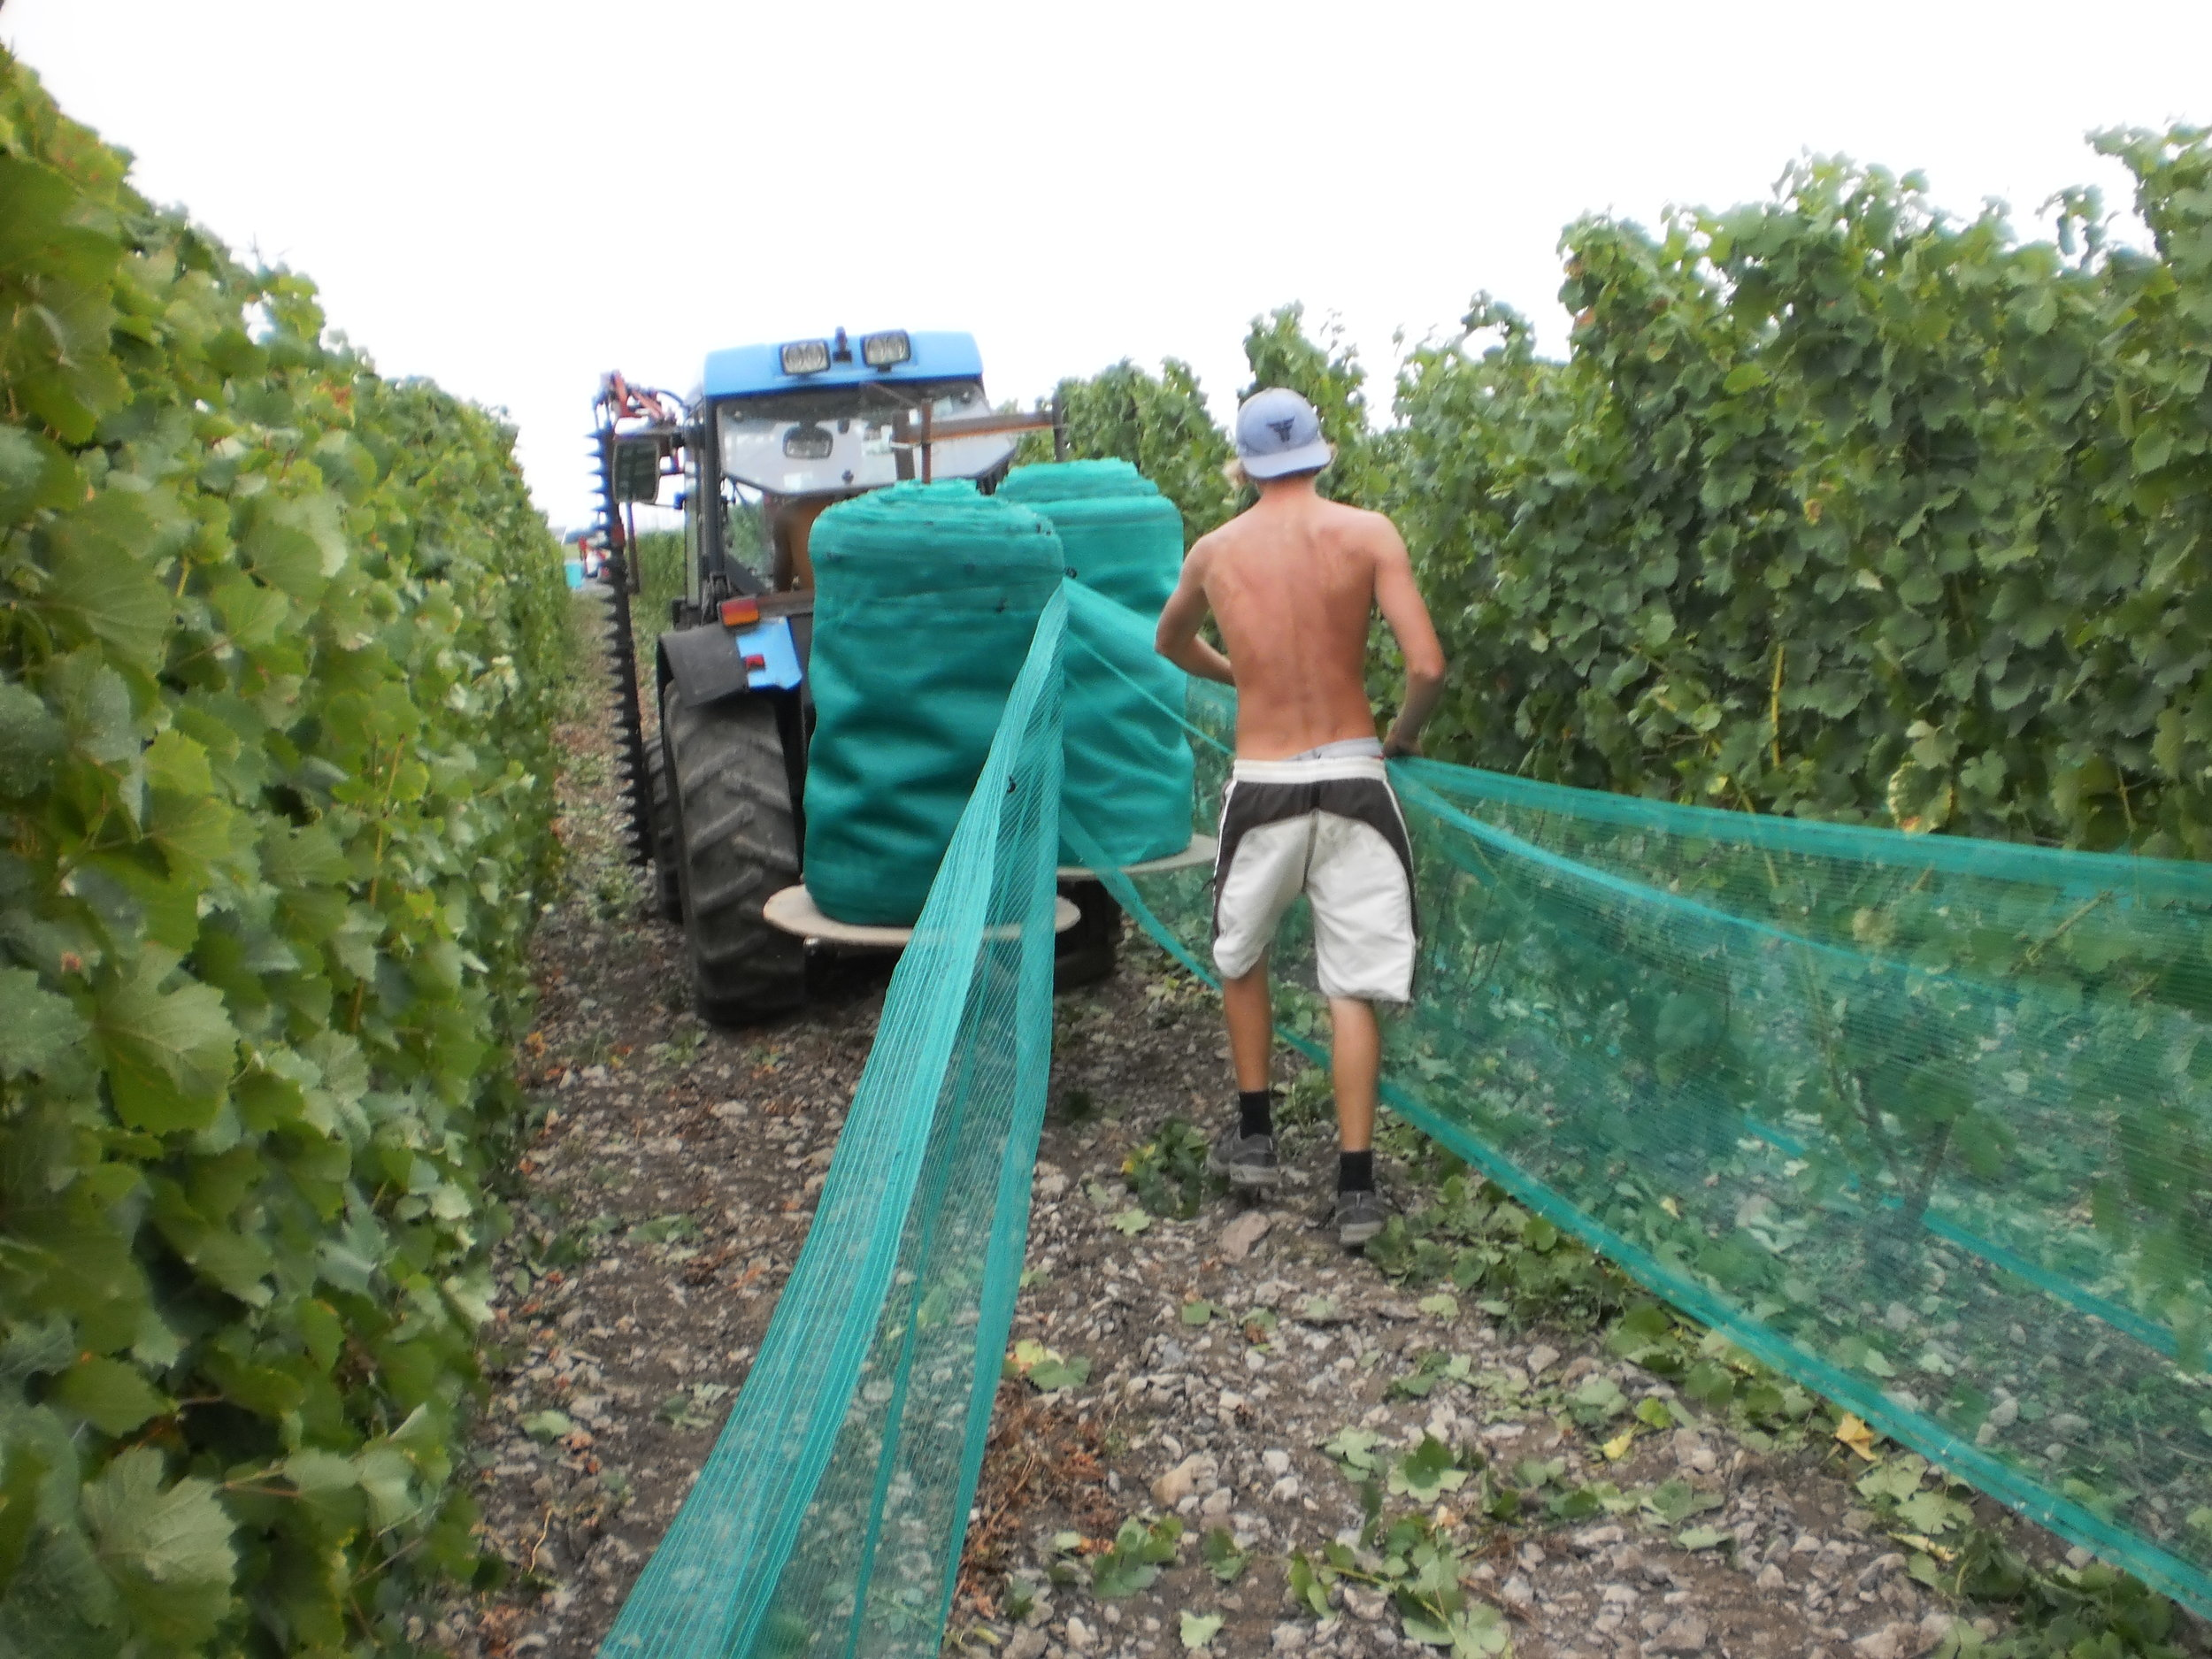 It's important to gets those nets on to protect the ripening fruit from predators.